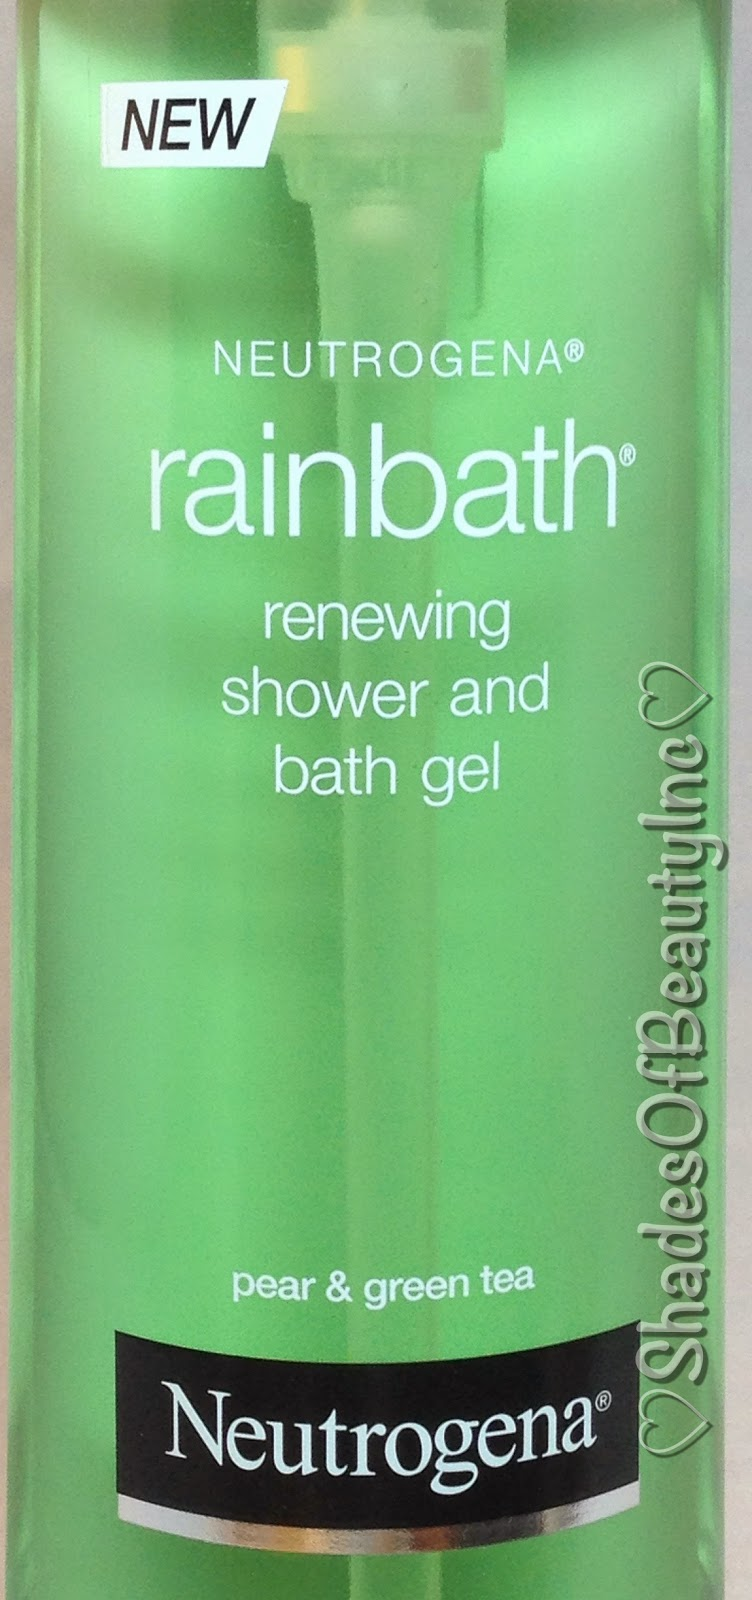 shades of beauty inc the other two products are the neutrogena rainbath renewing shower and bath gel the scent is pear green tea i would describe the scent as a crisp